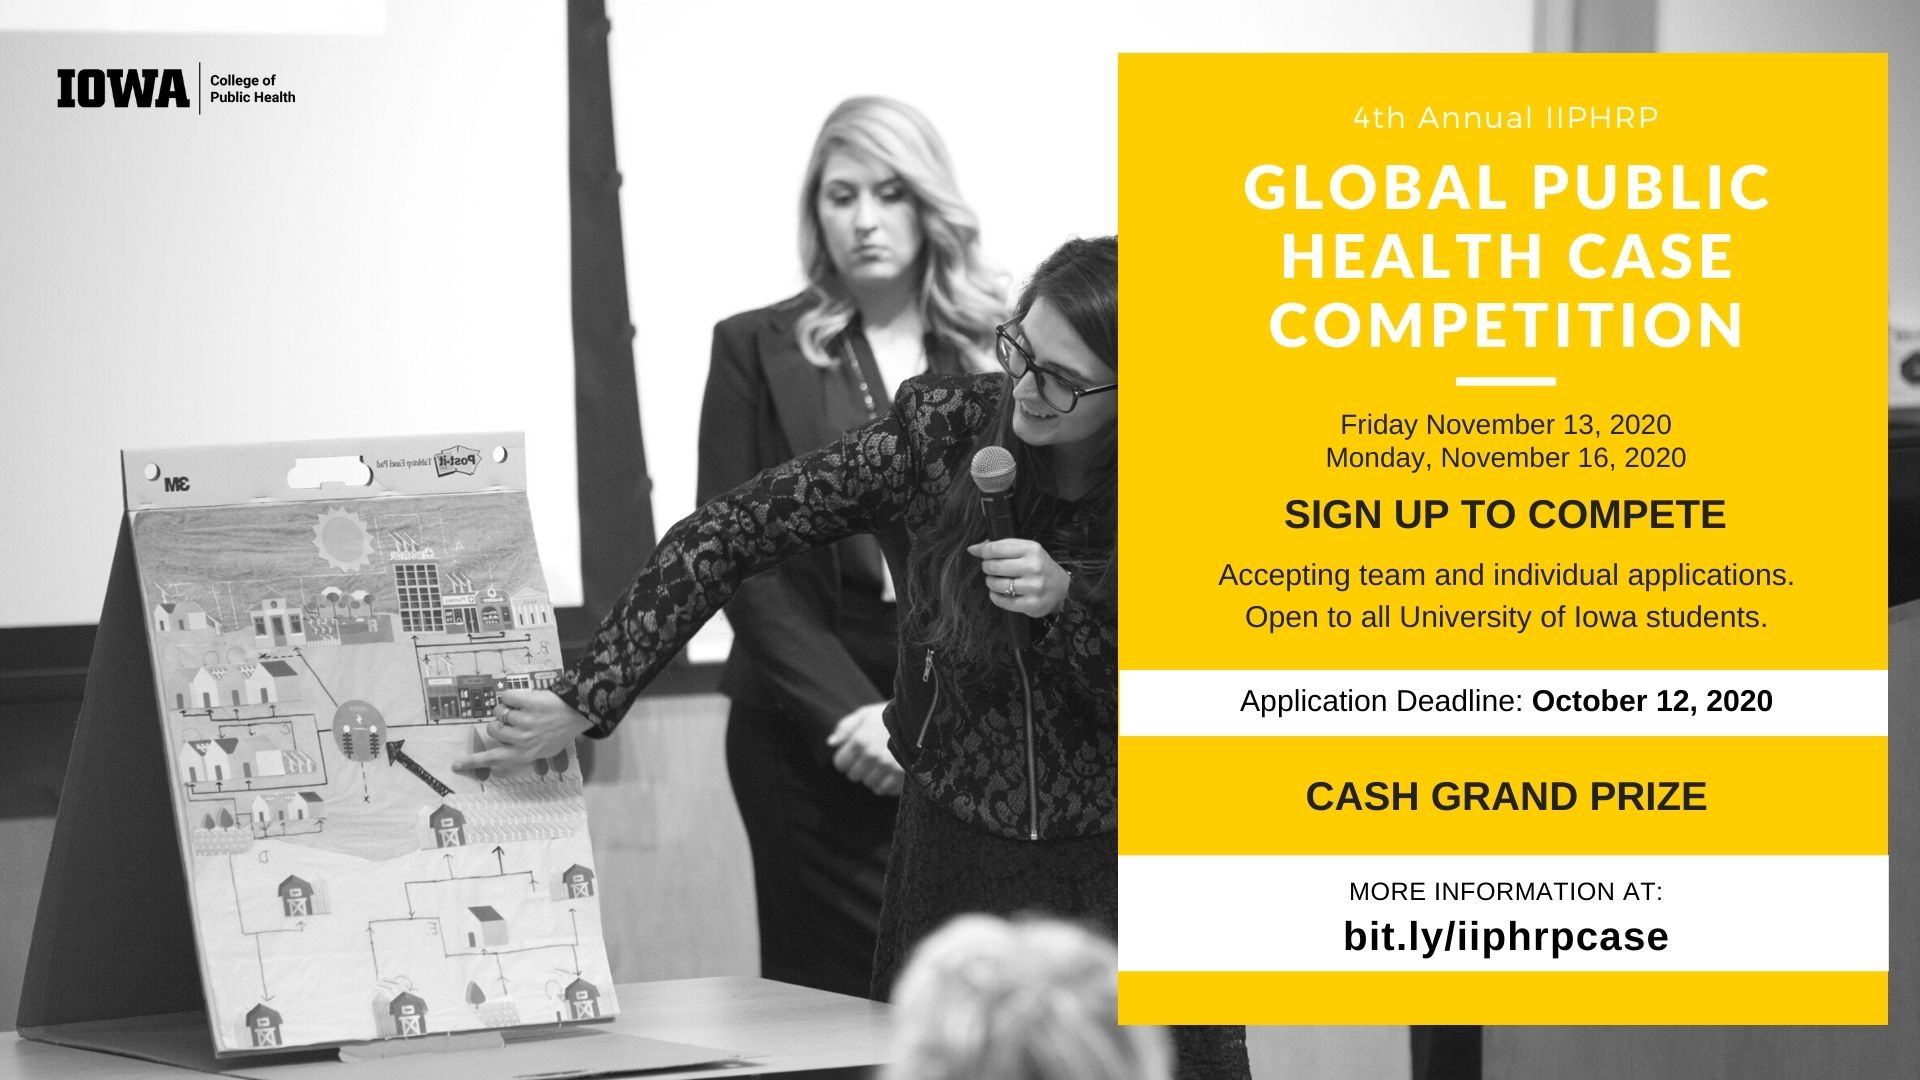 Global Public Health Case Competition